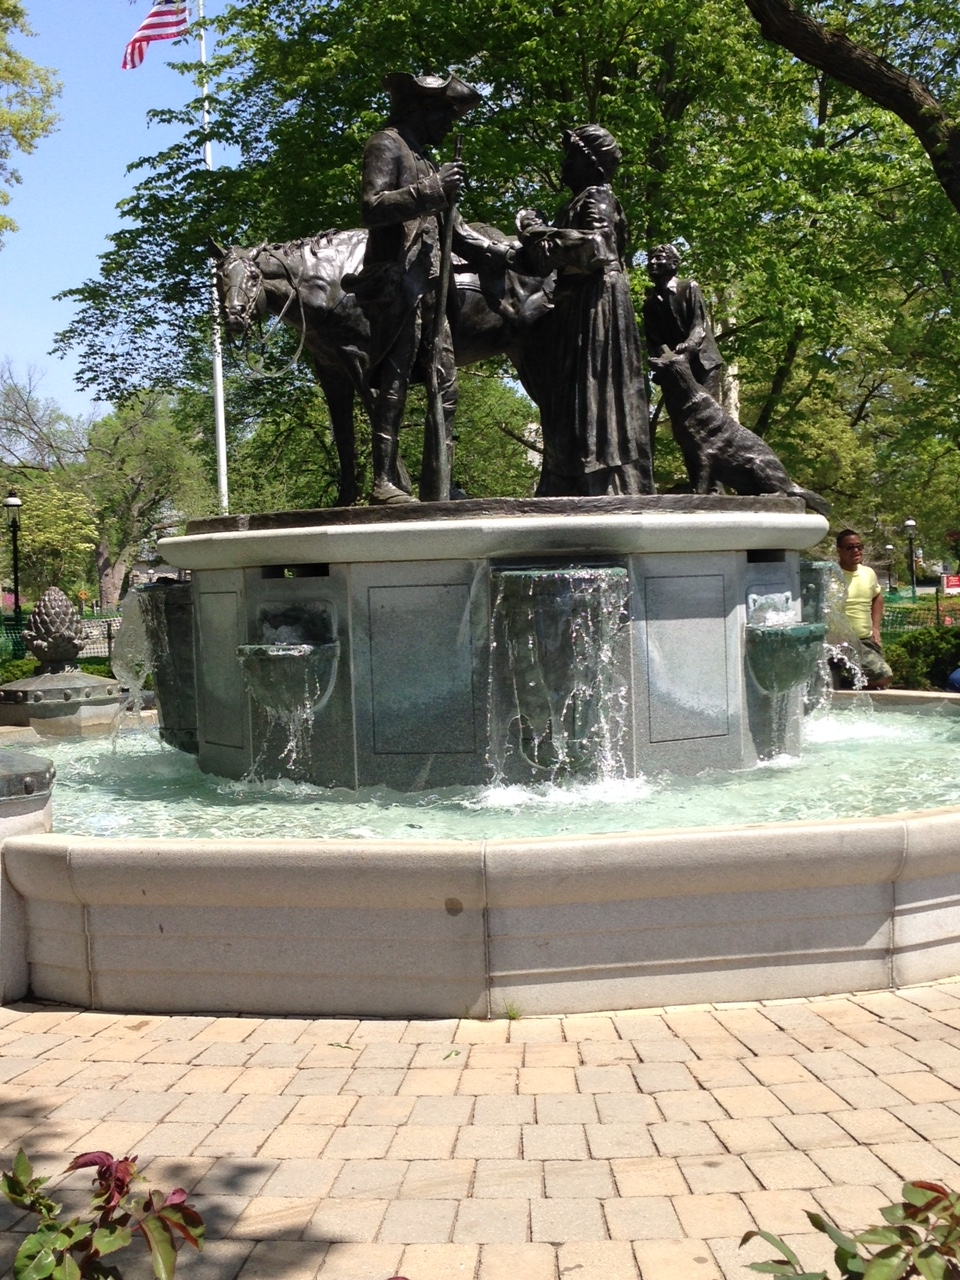 Morristown Happenings Things To Do In Morristown This